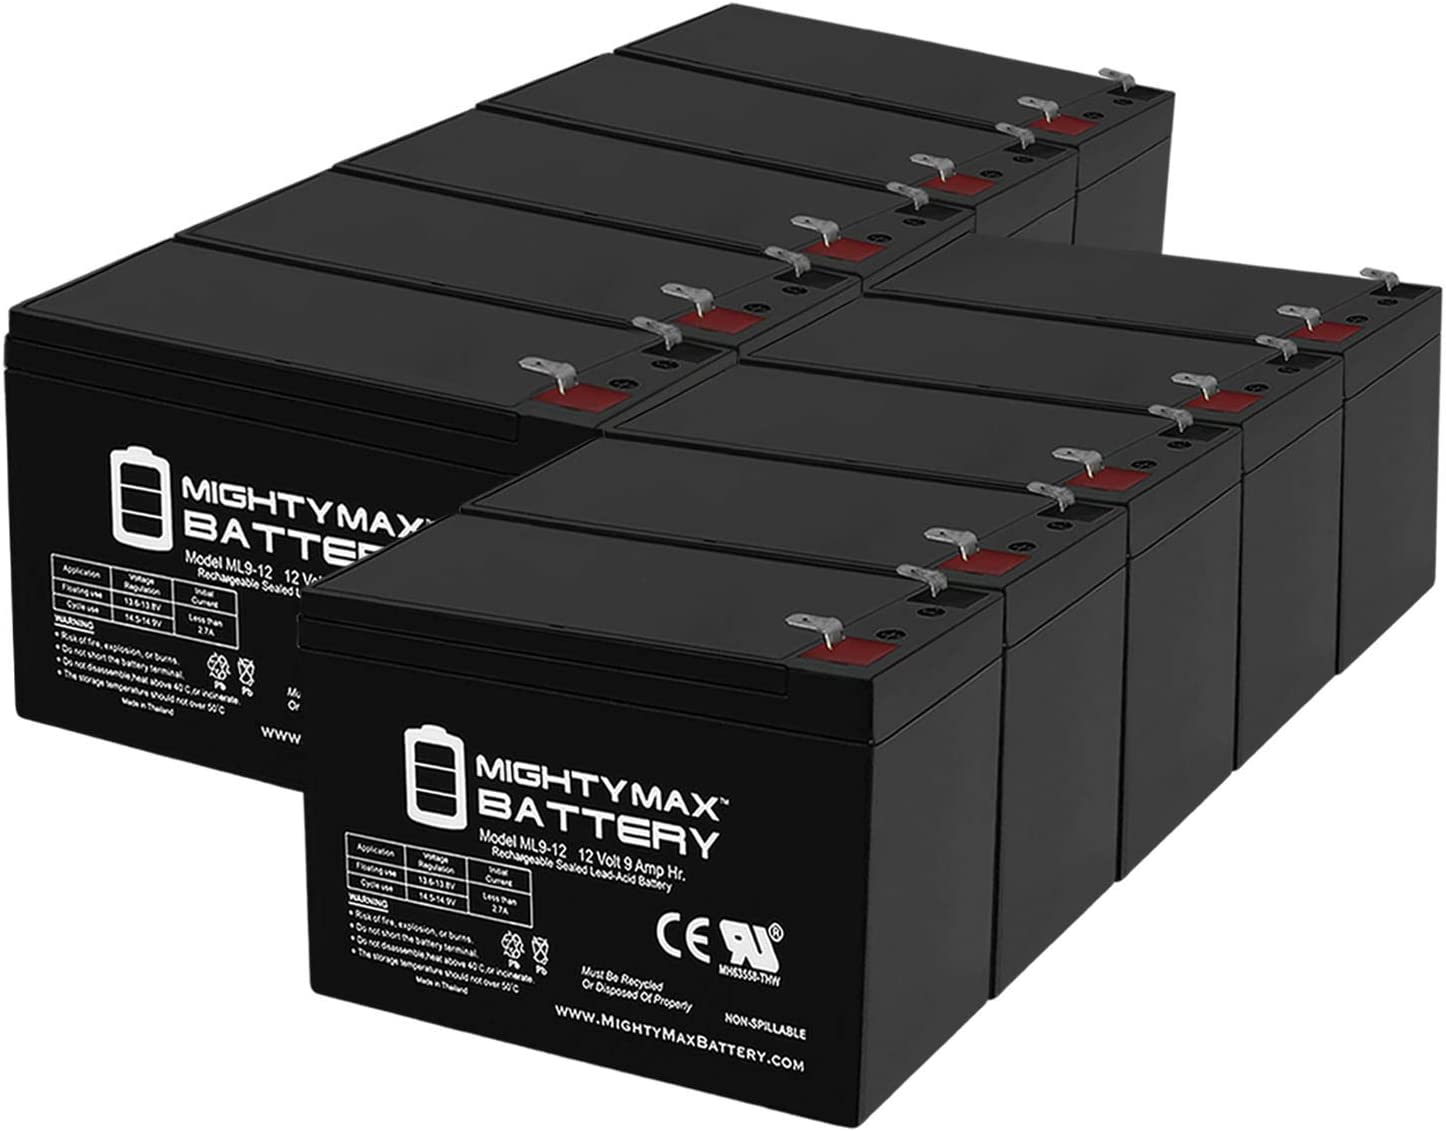 Mighty Max Battery Mesa Mall 12V Easy-to-use 9Ah H Compatible Replacement with